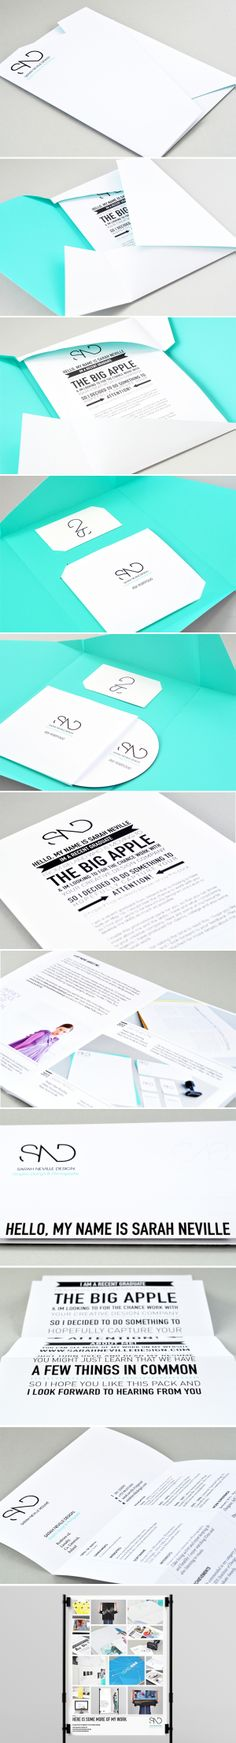 This self-promotional pack was designed to send to design companies in the hope of employment. The brief was to promote myself as a graphic designer and exhibit my work and skills, while capturing the attention of possible future employers.